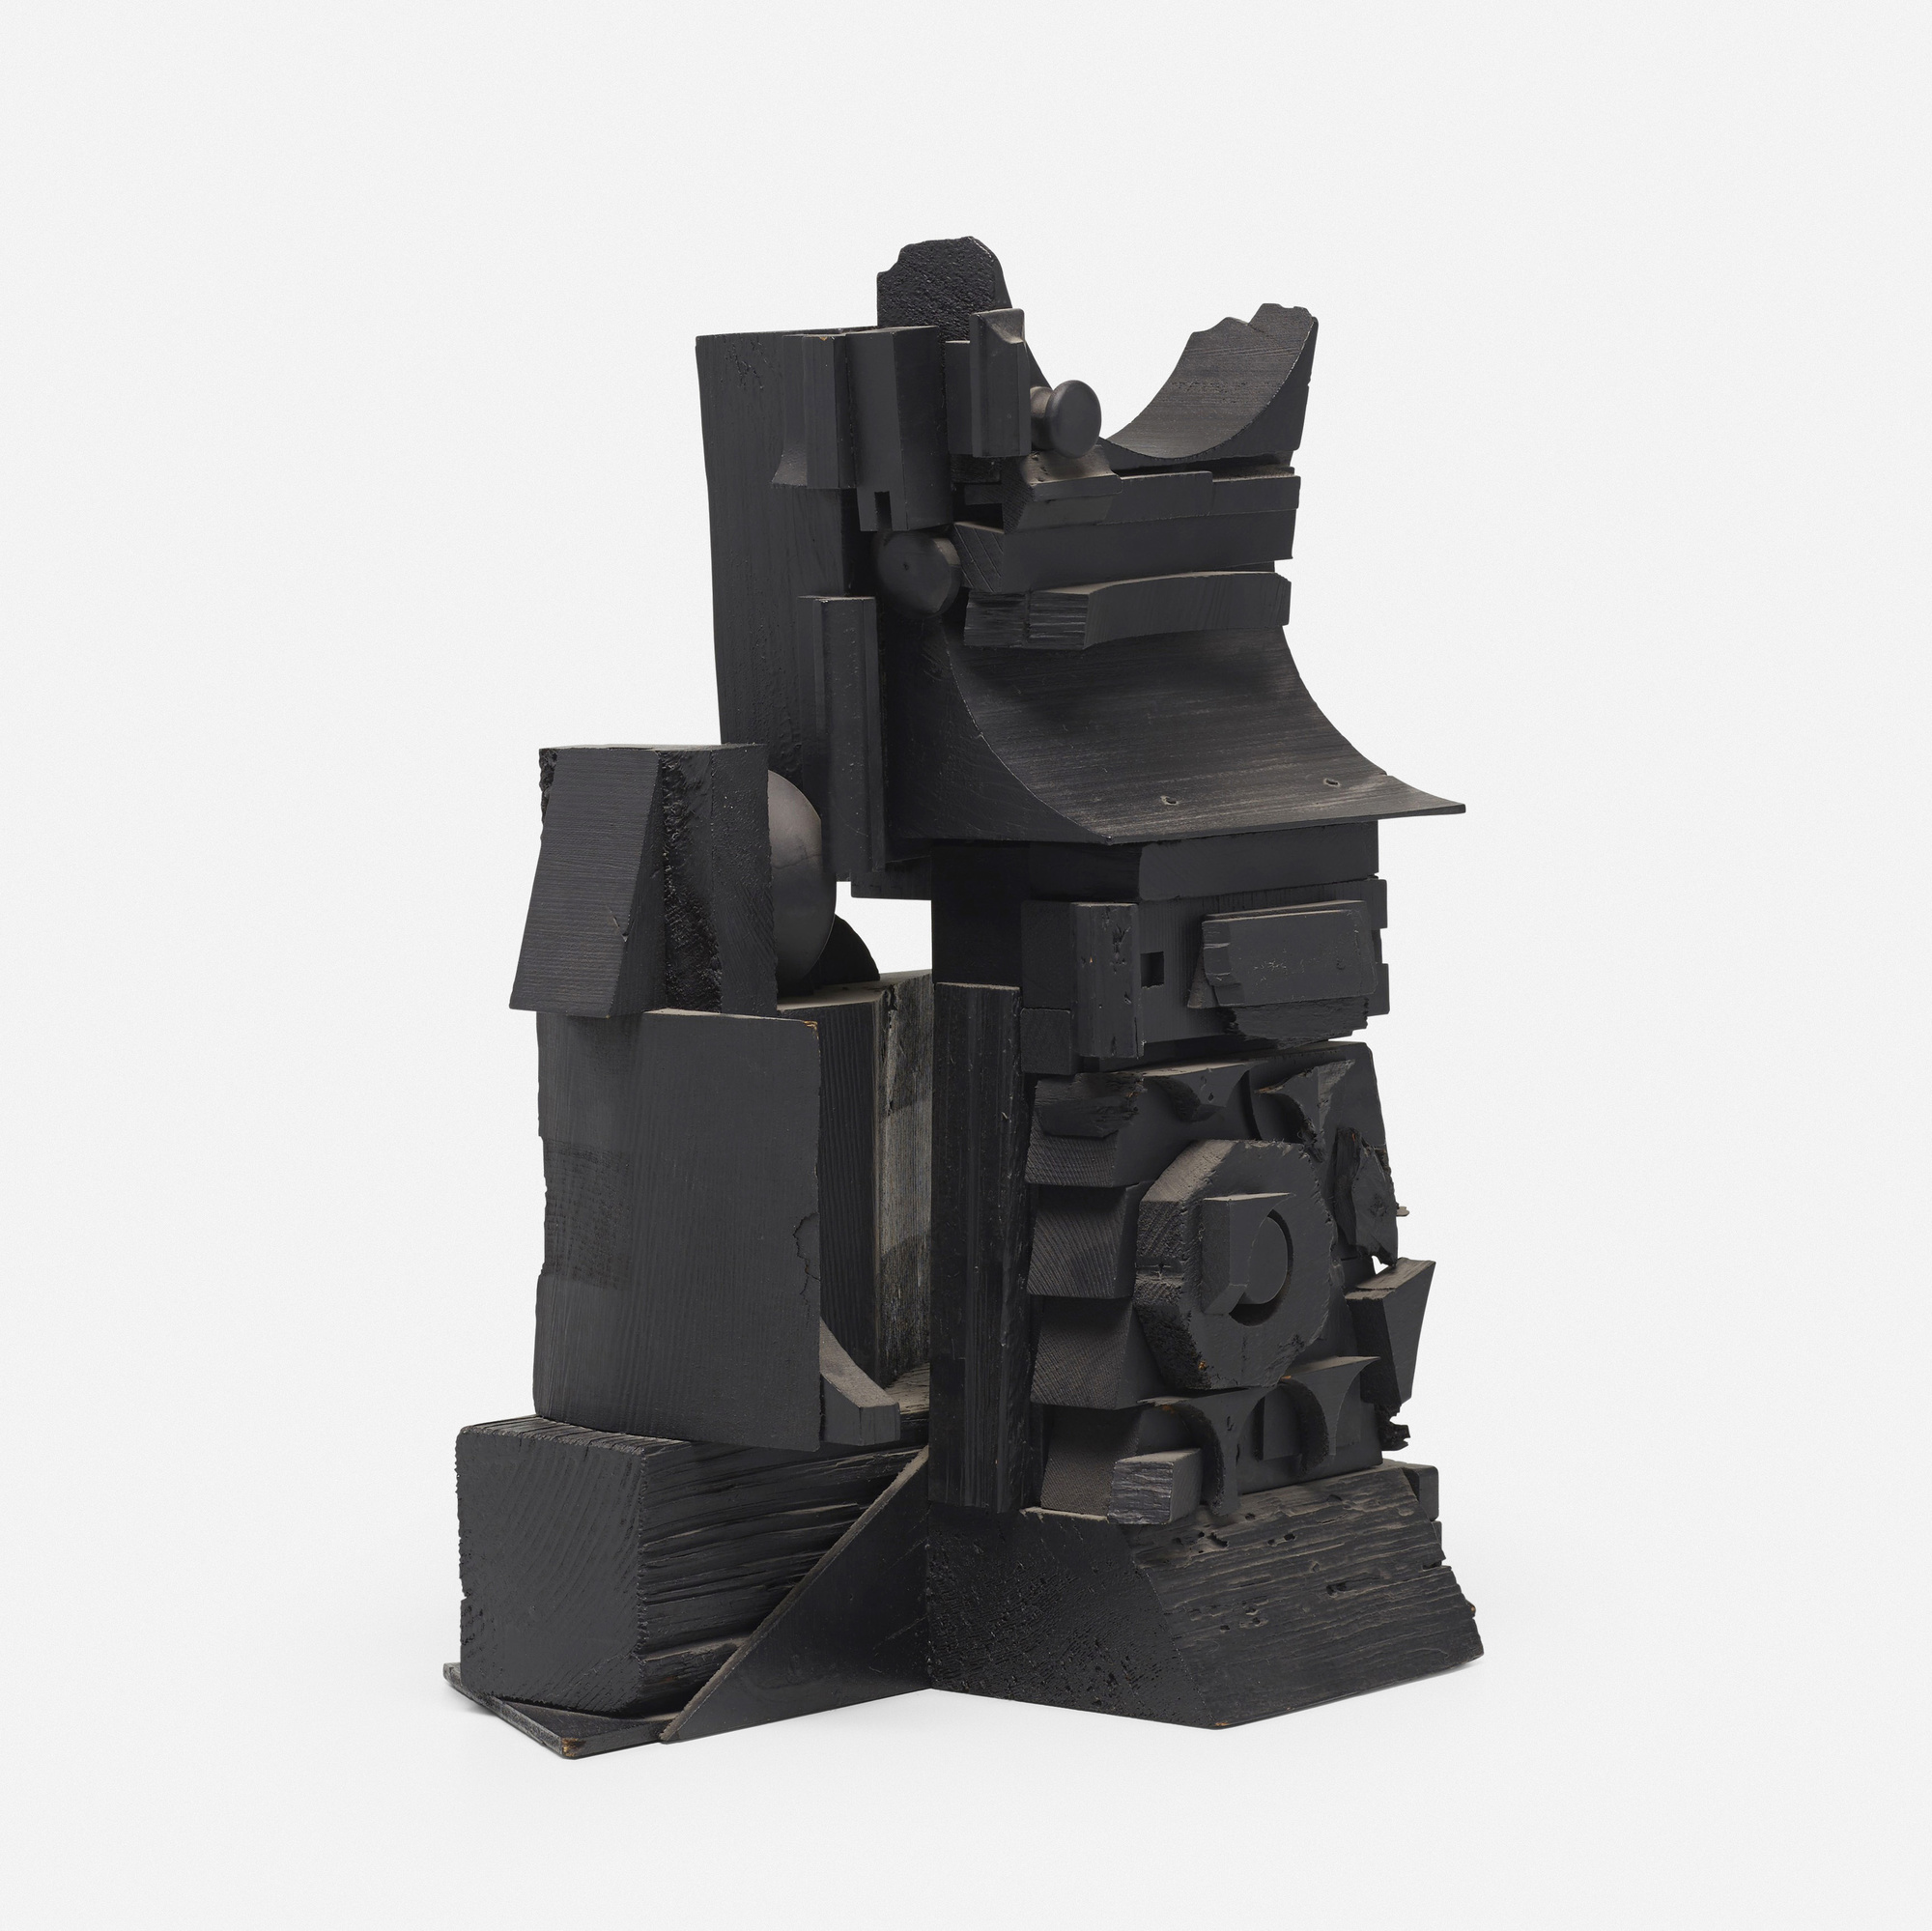 105: Louise Nevelson / Sky Series D (1 of 5)